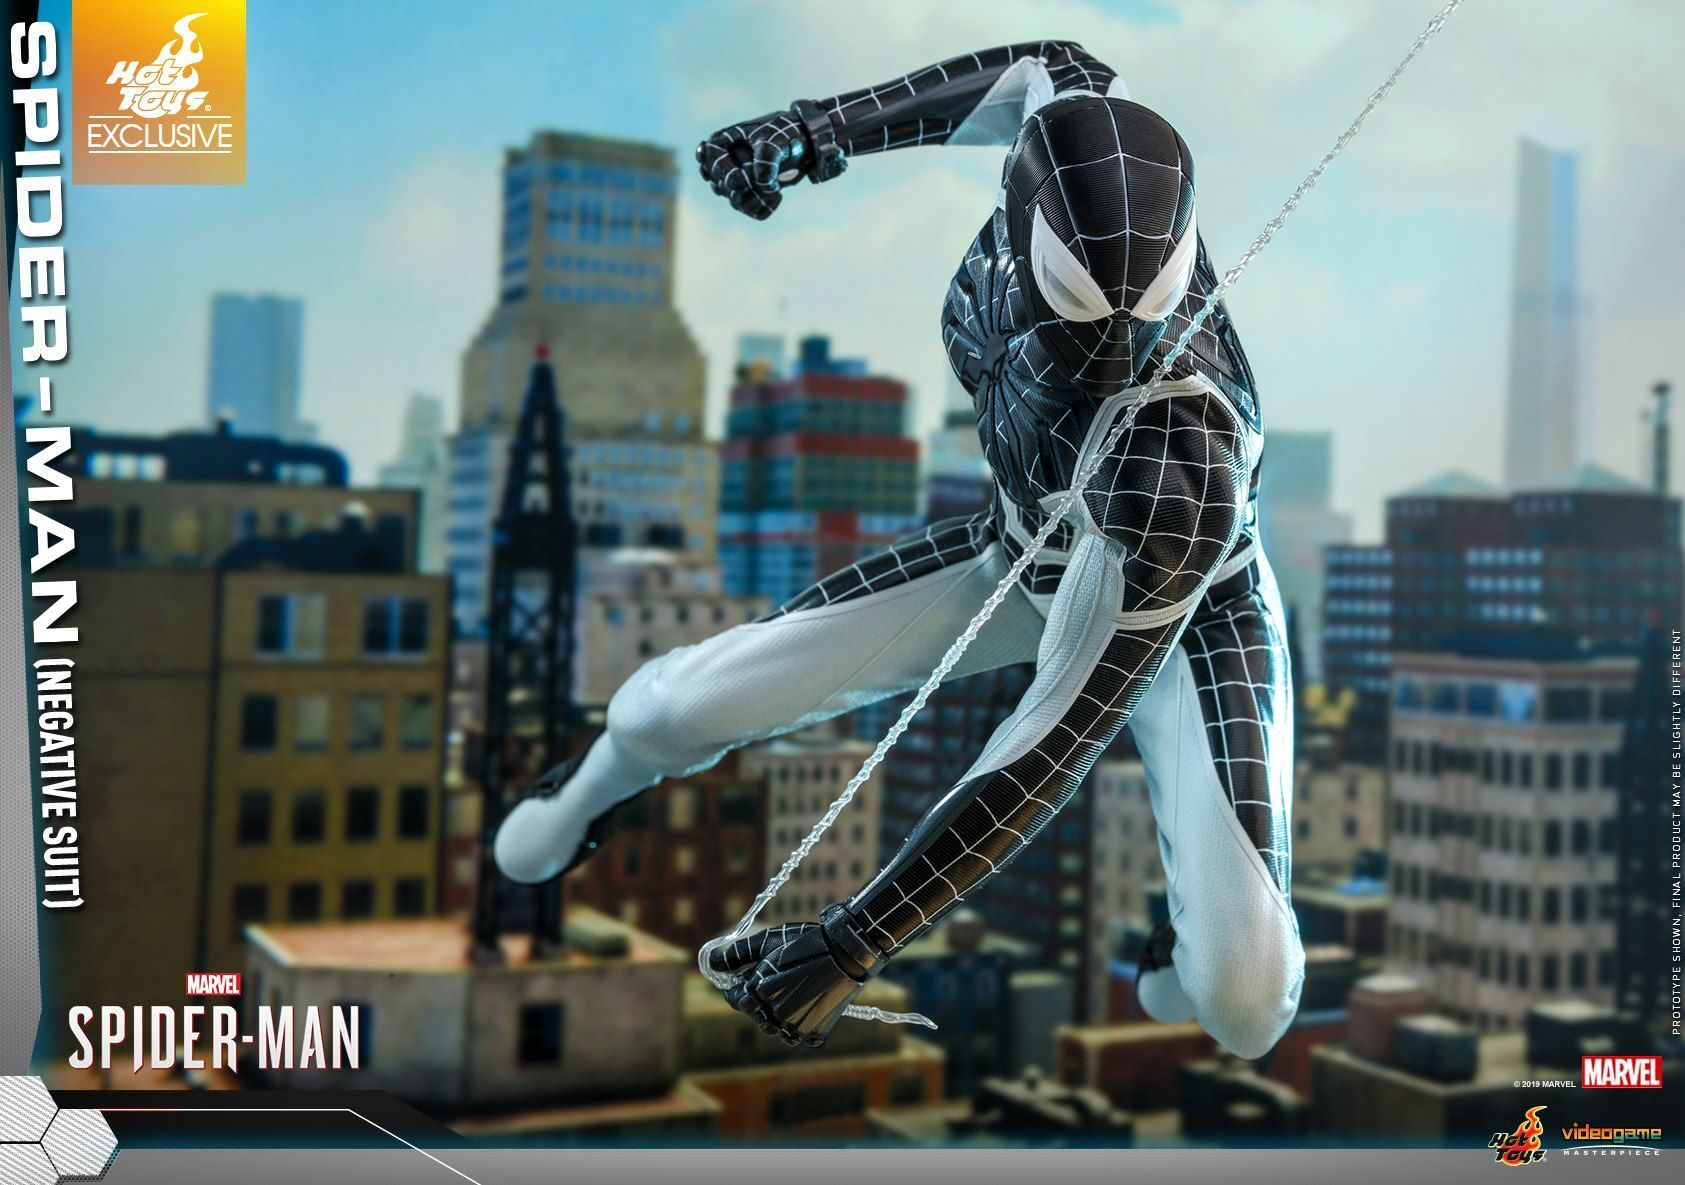 Spider-Man: Negative Suit: Exclusive: VGM36